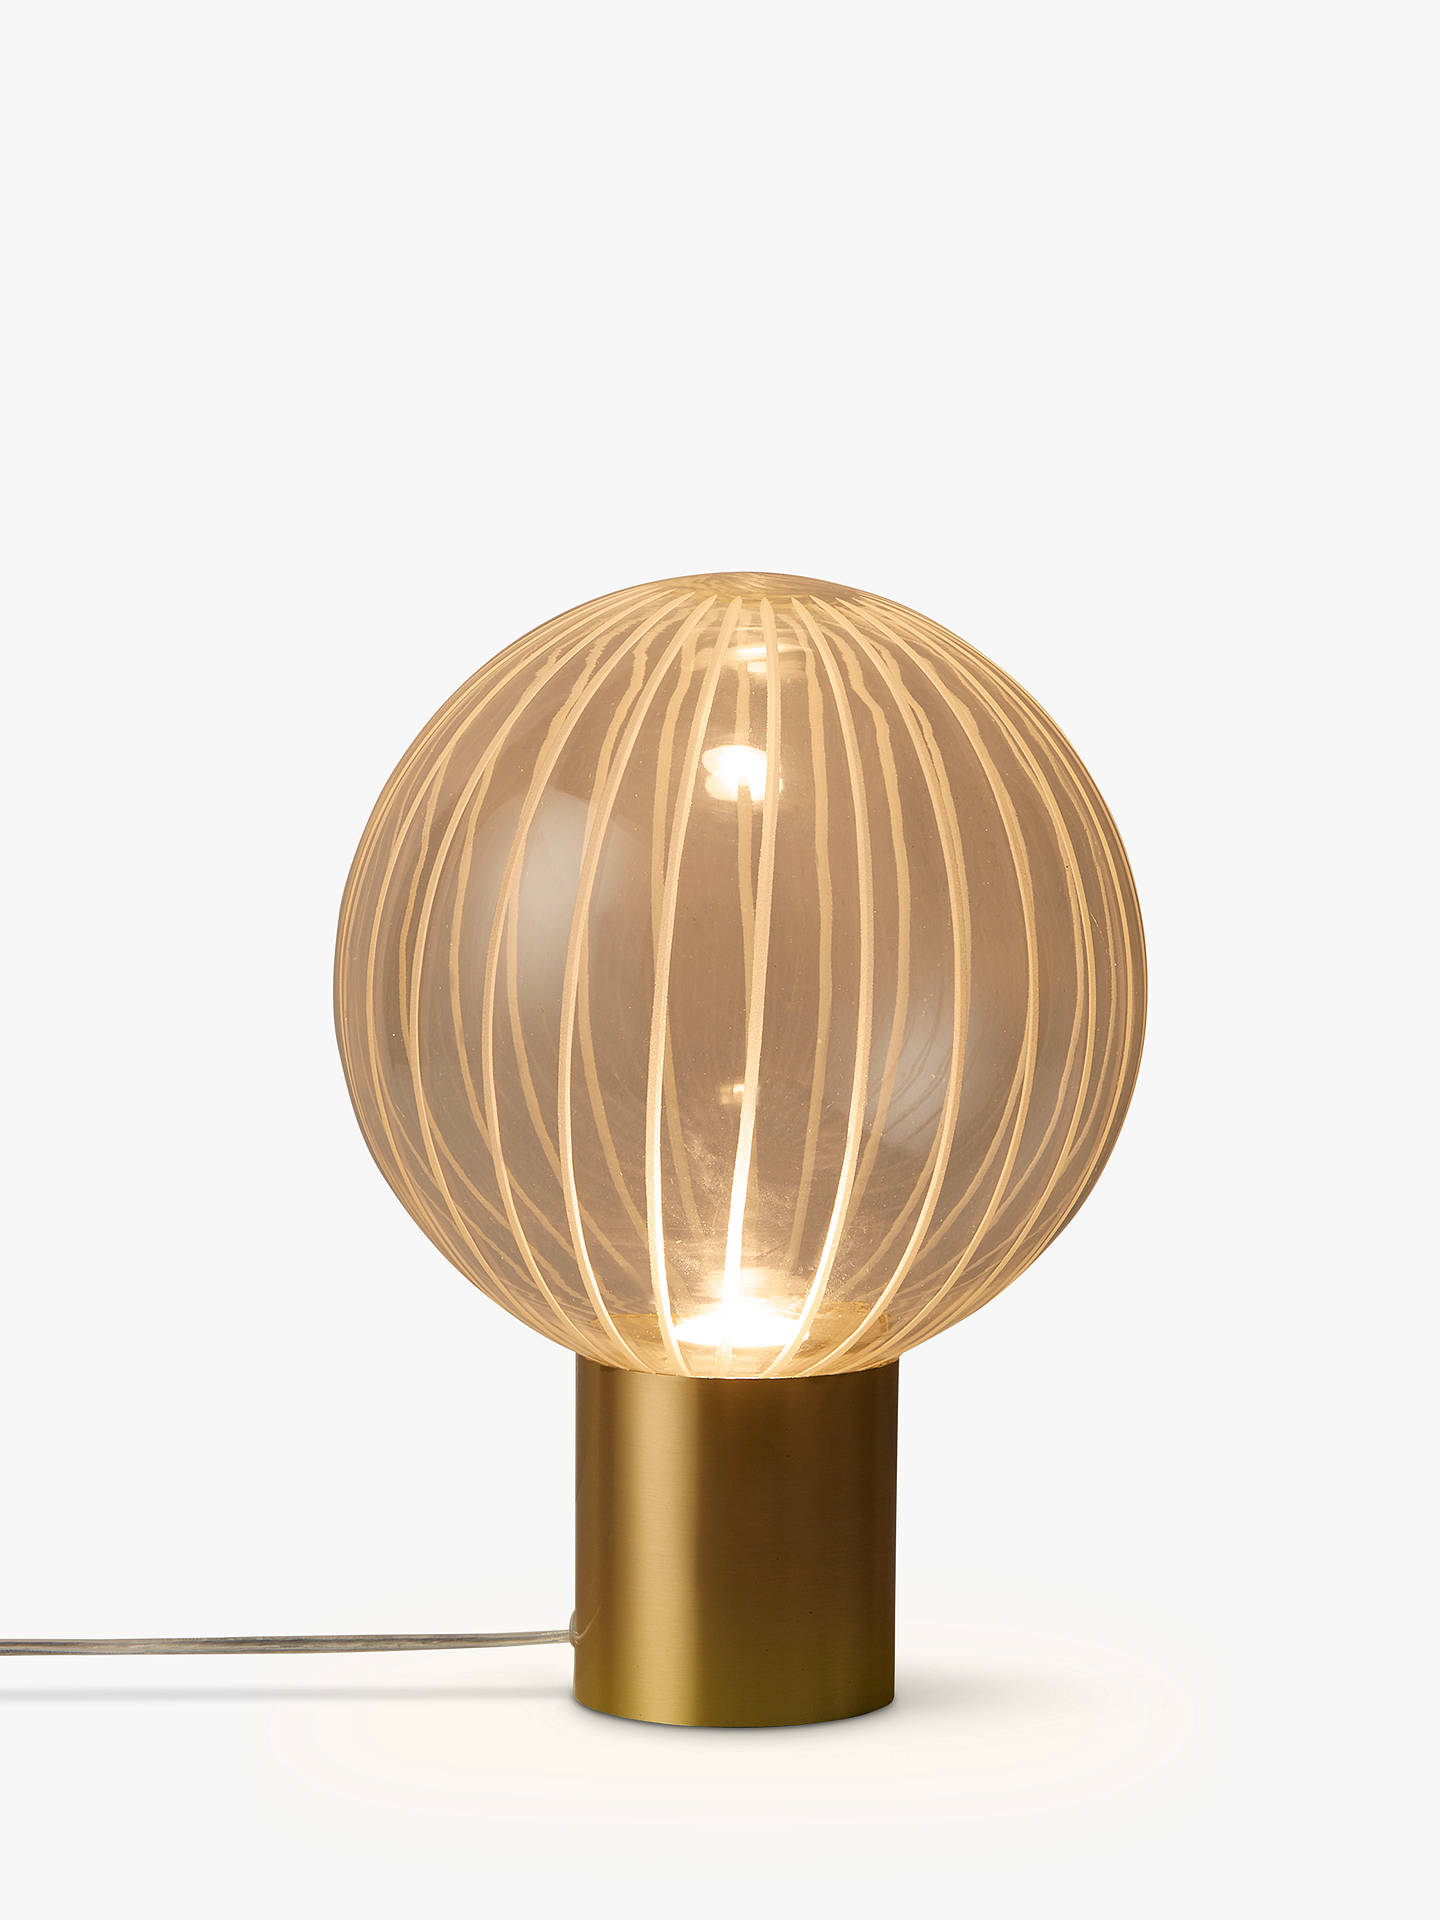 Led LampGold Partners John Marlo Lewisamp; Table IE9WH2eDY